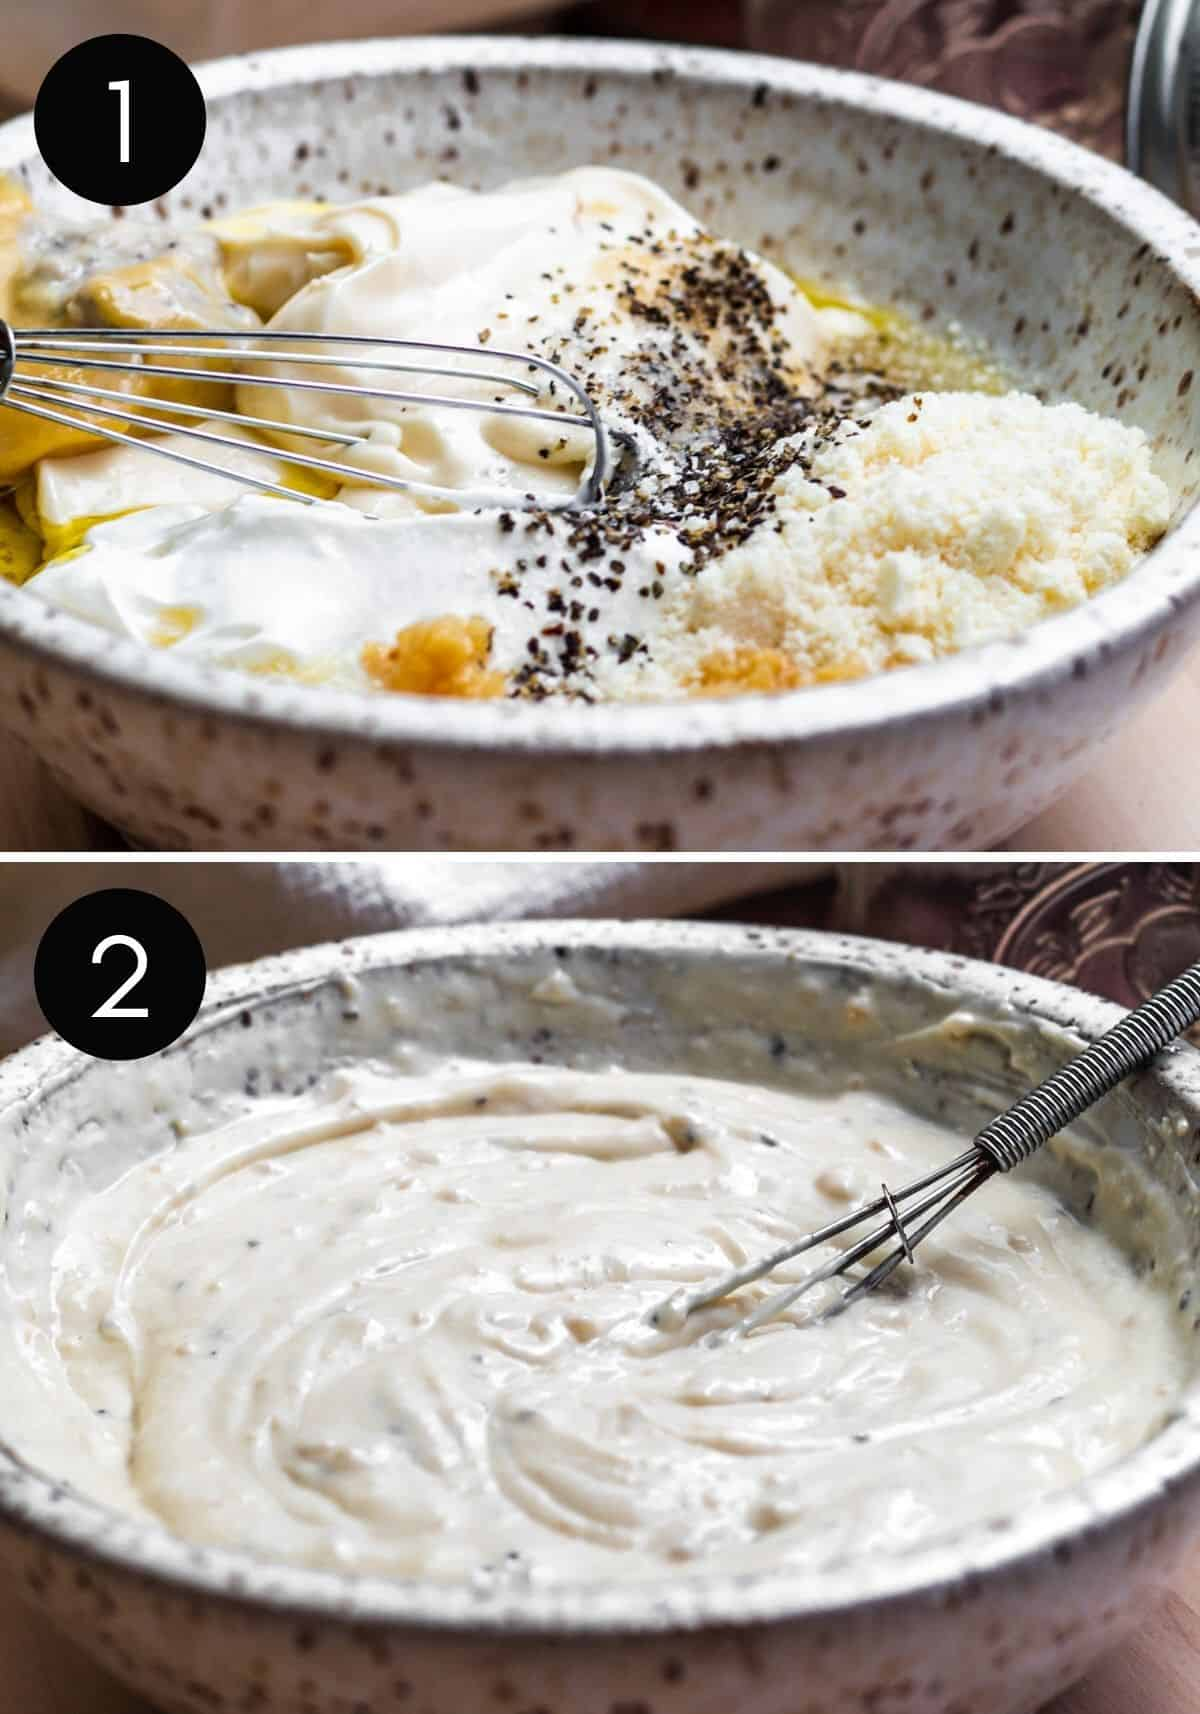 Prep image collage showing dressing being prepped and whisked in white bowl.